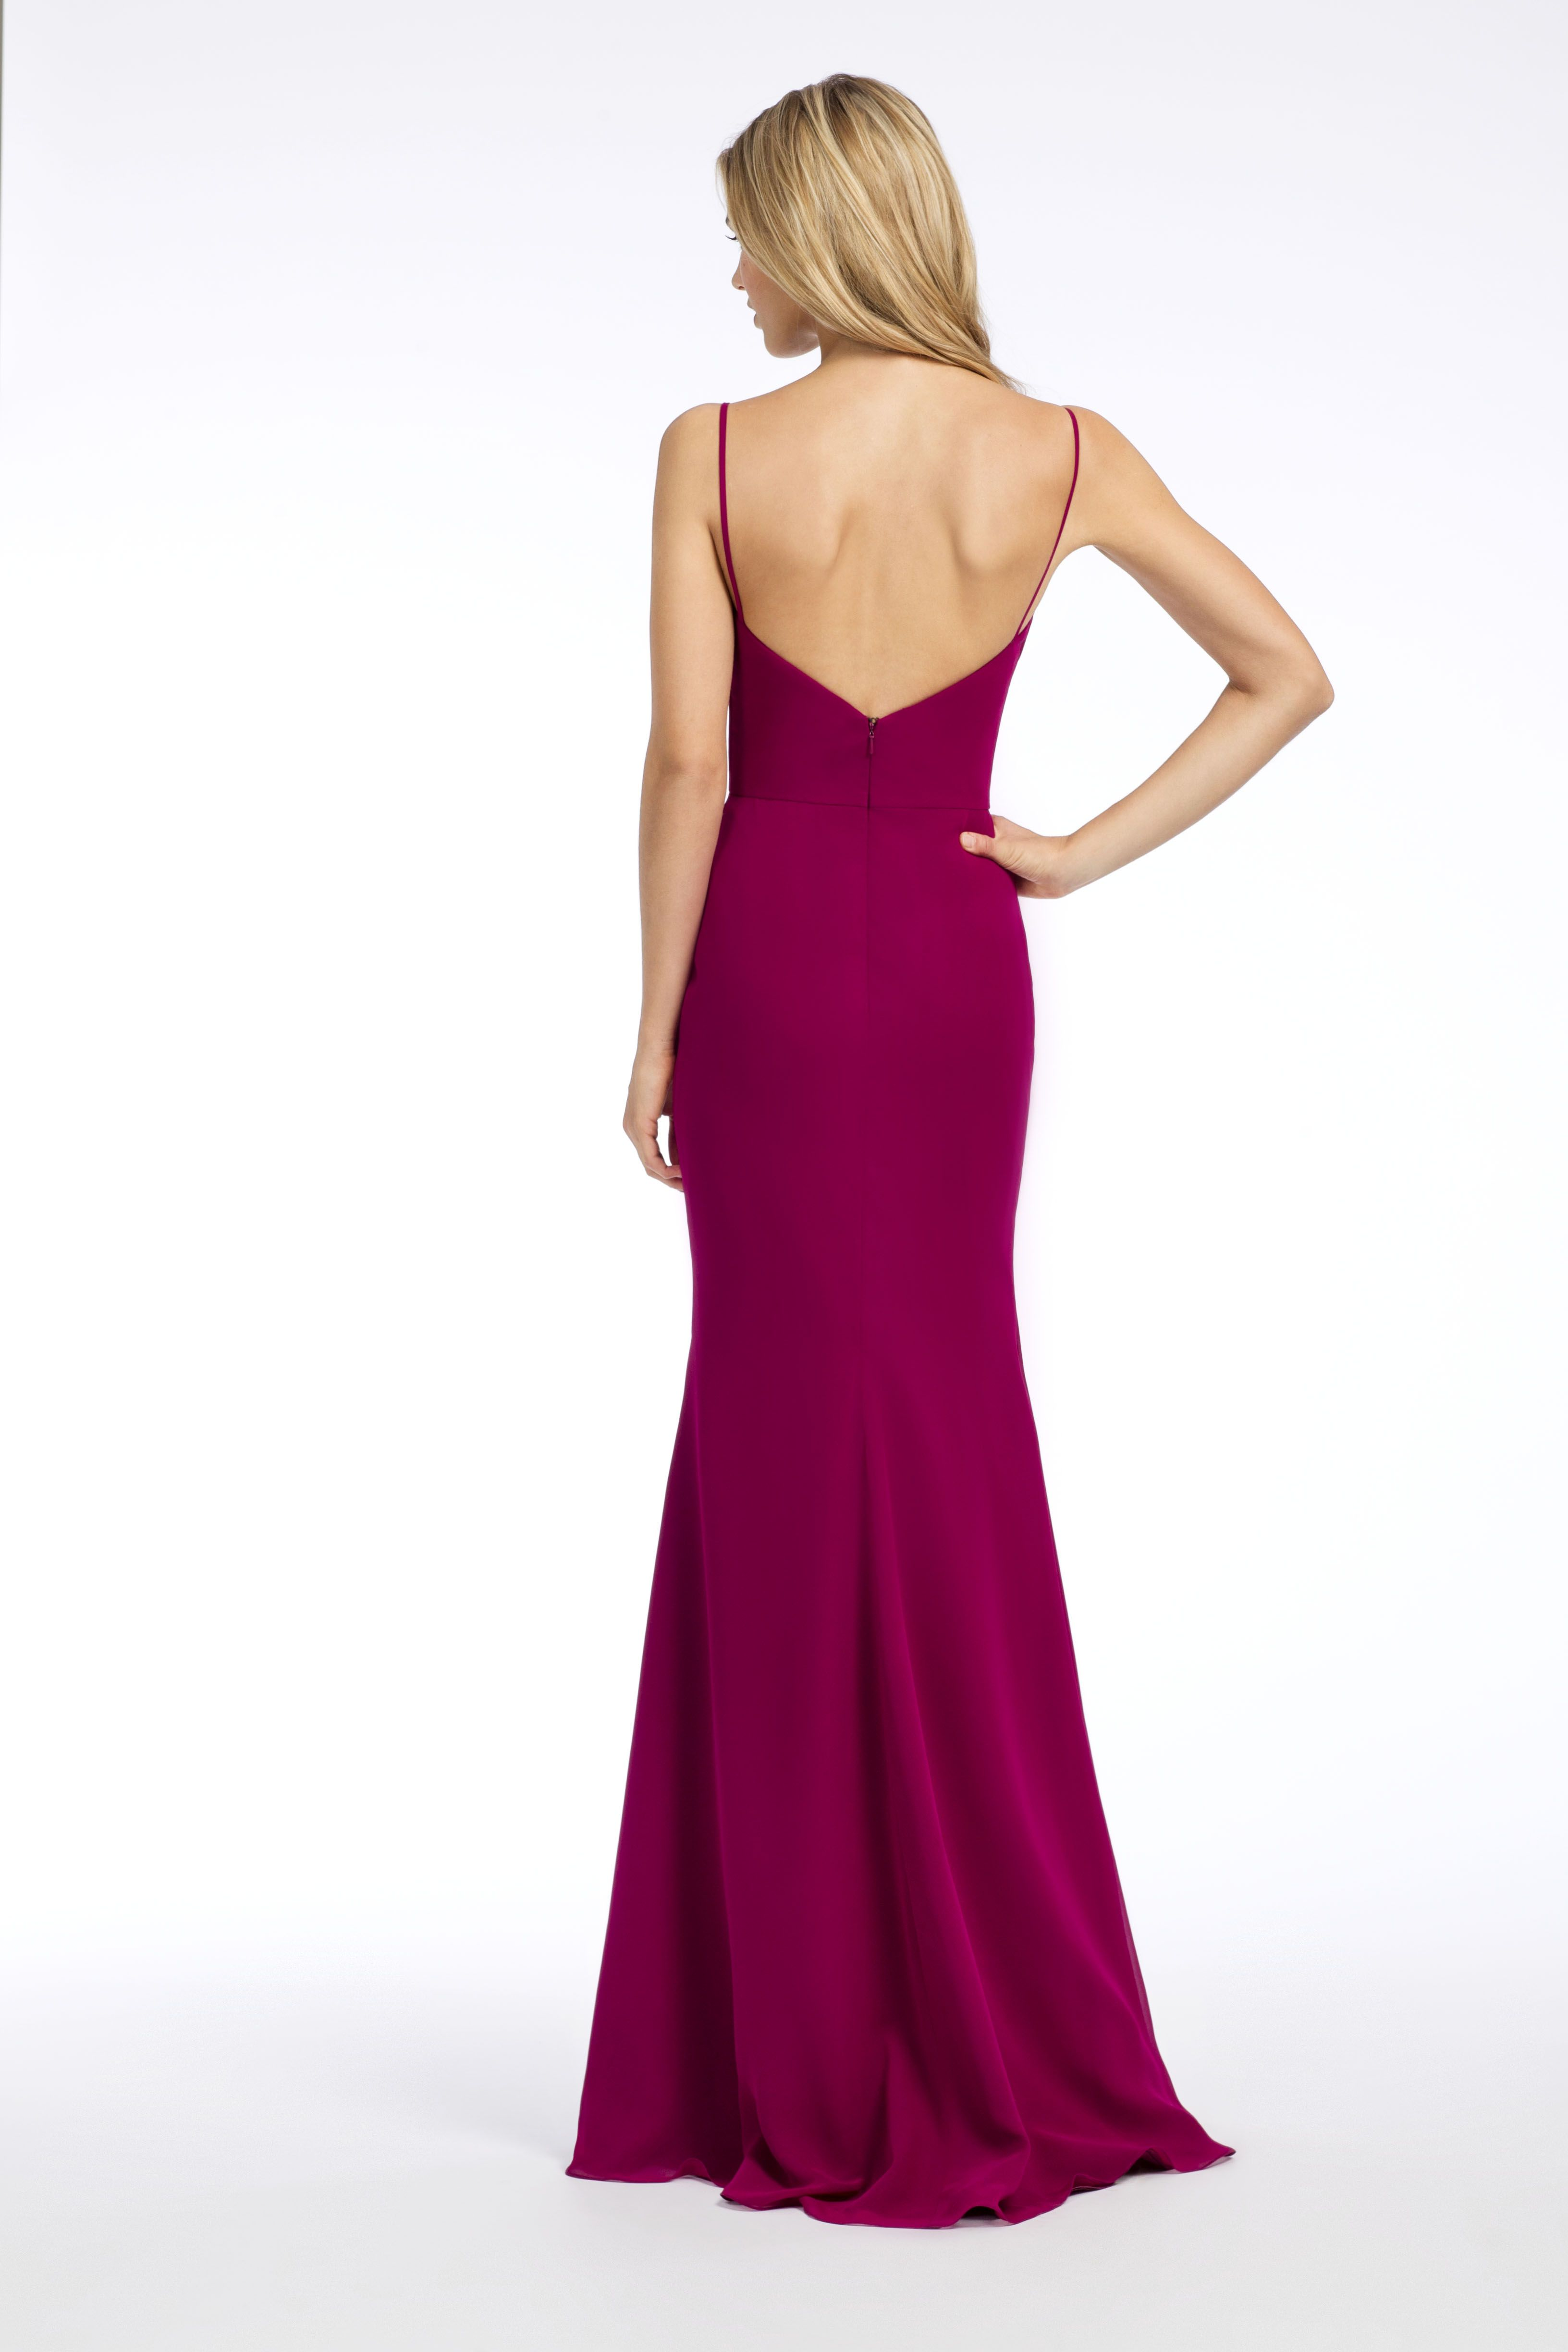 Hayley paige occasions style occasions fall pinterest